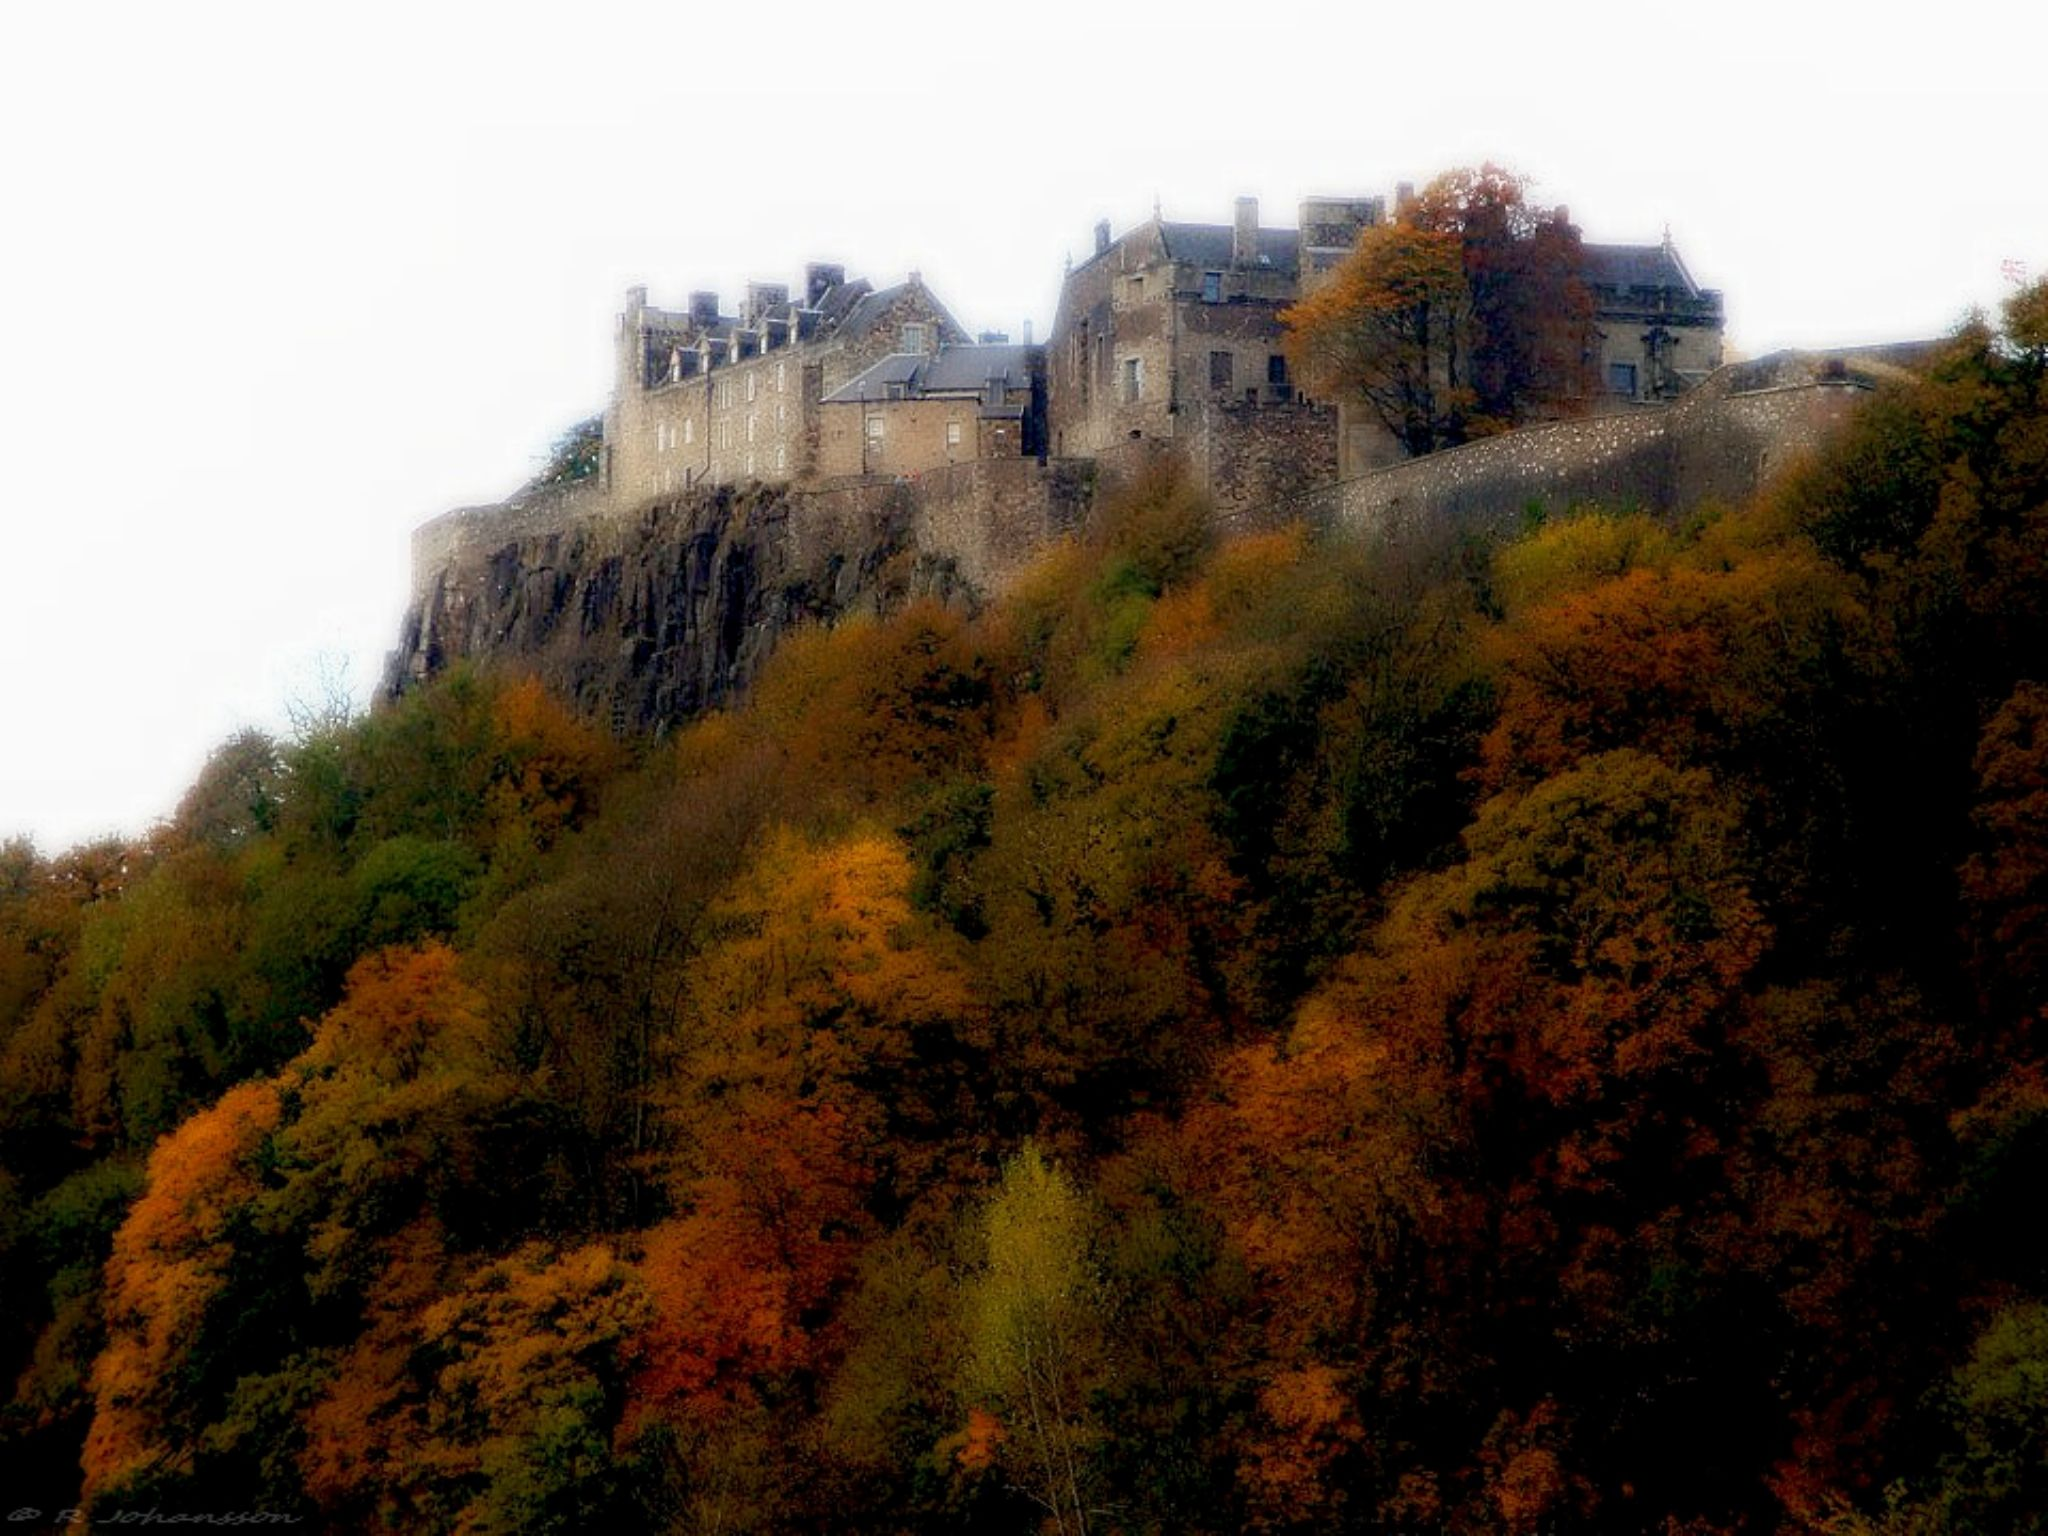 Stirling Castle by roger.joh